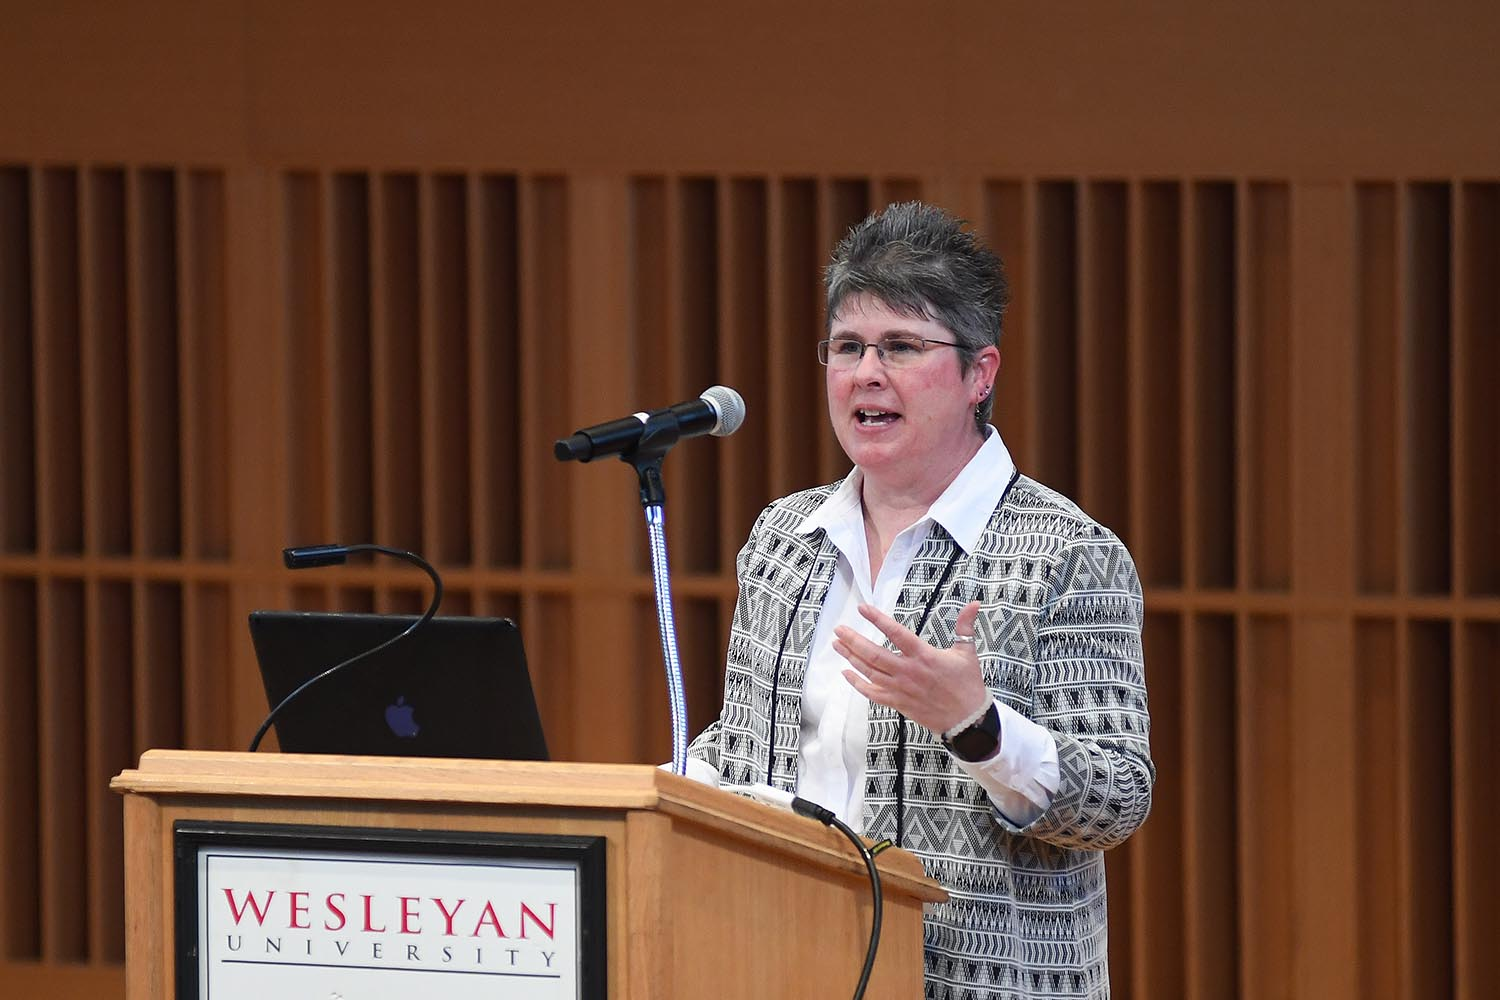 Debbie Colucci, Interim vice president for equity and inclusion, and equity compliance director and deputy title IX coordinator welcomed the audience to Wesleyan's MLK Day celebration.